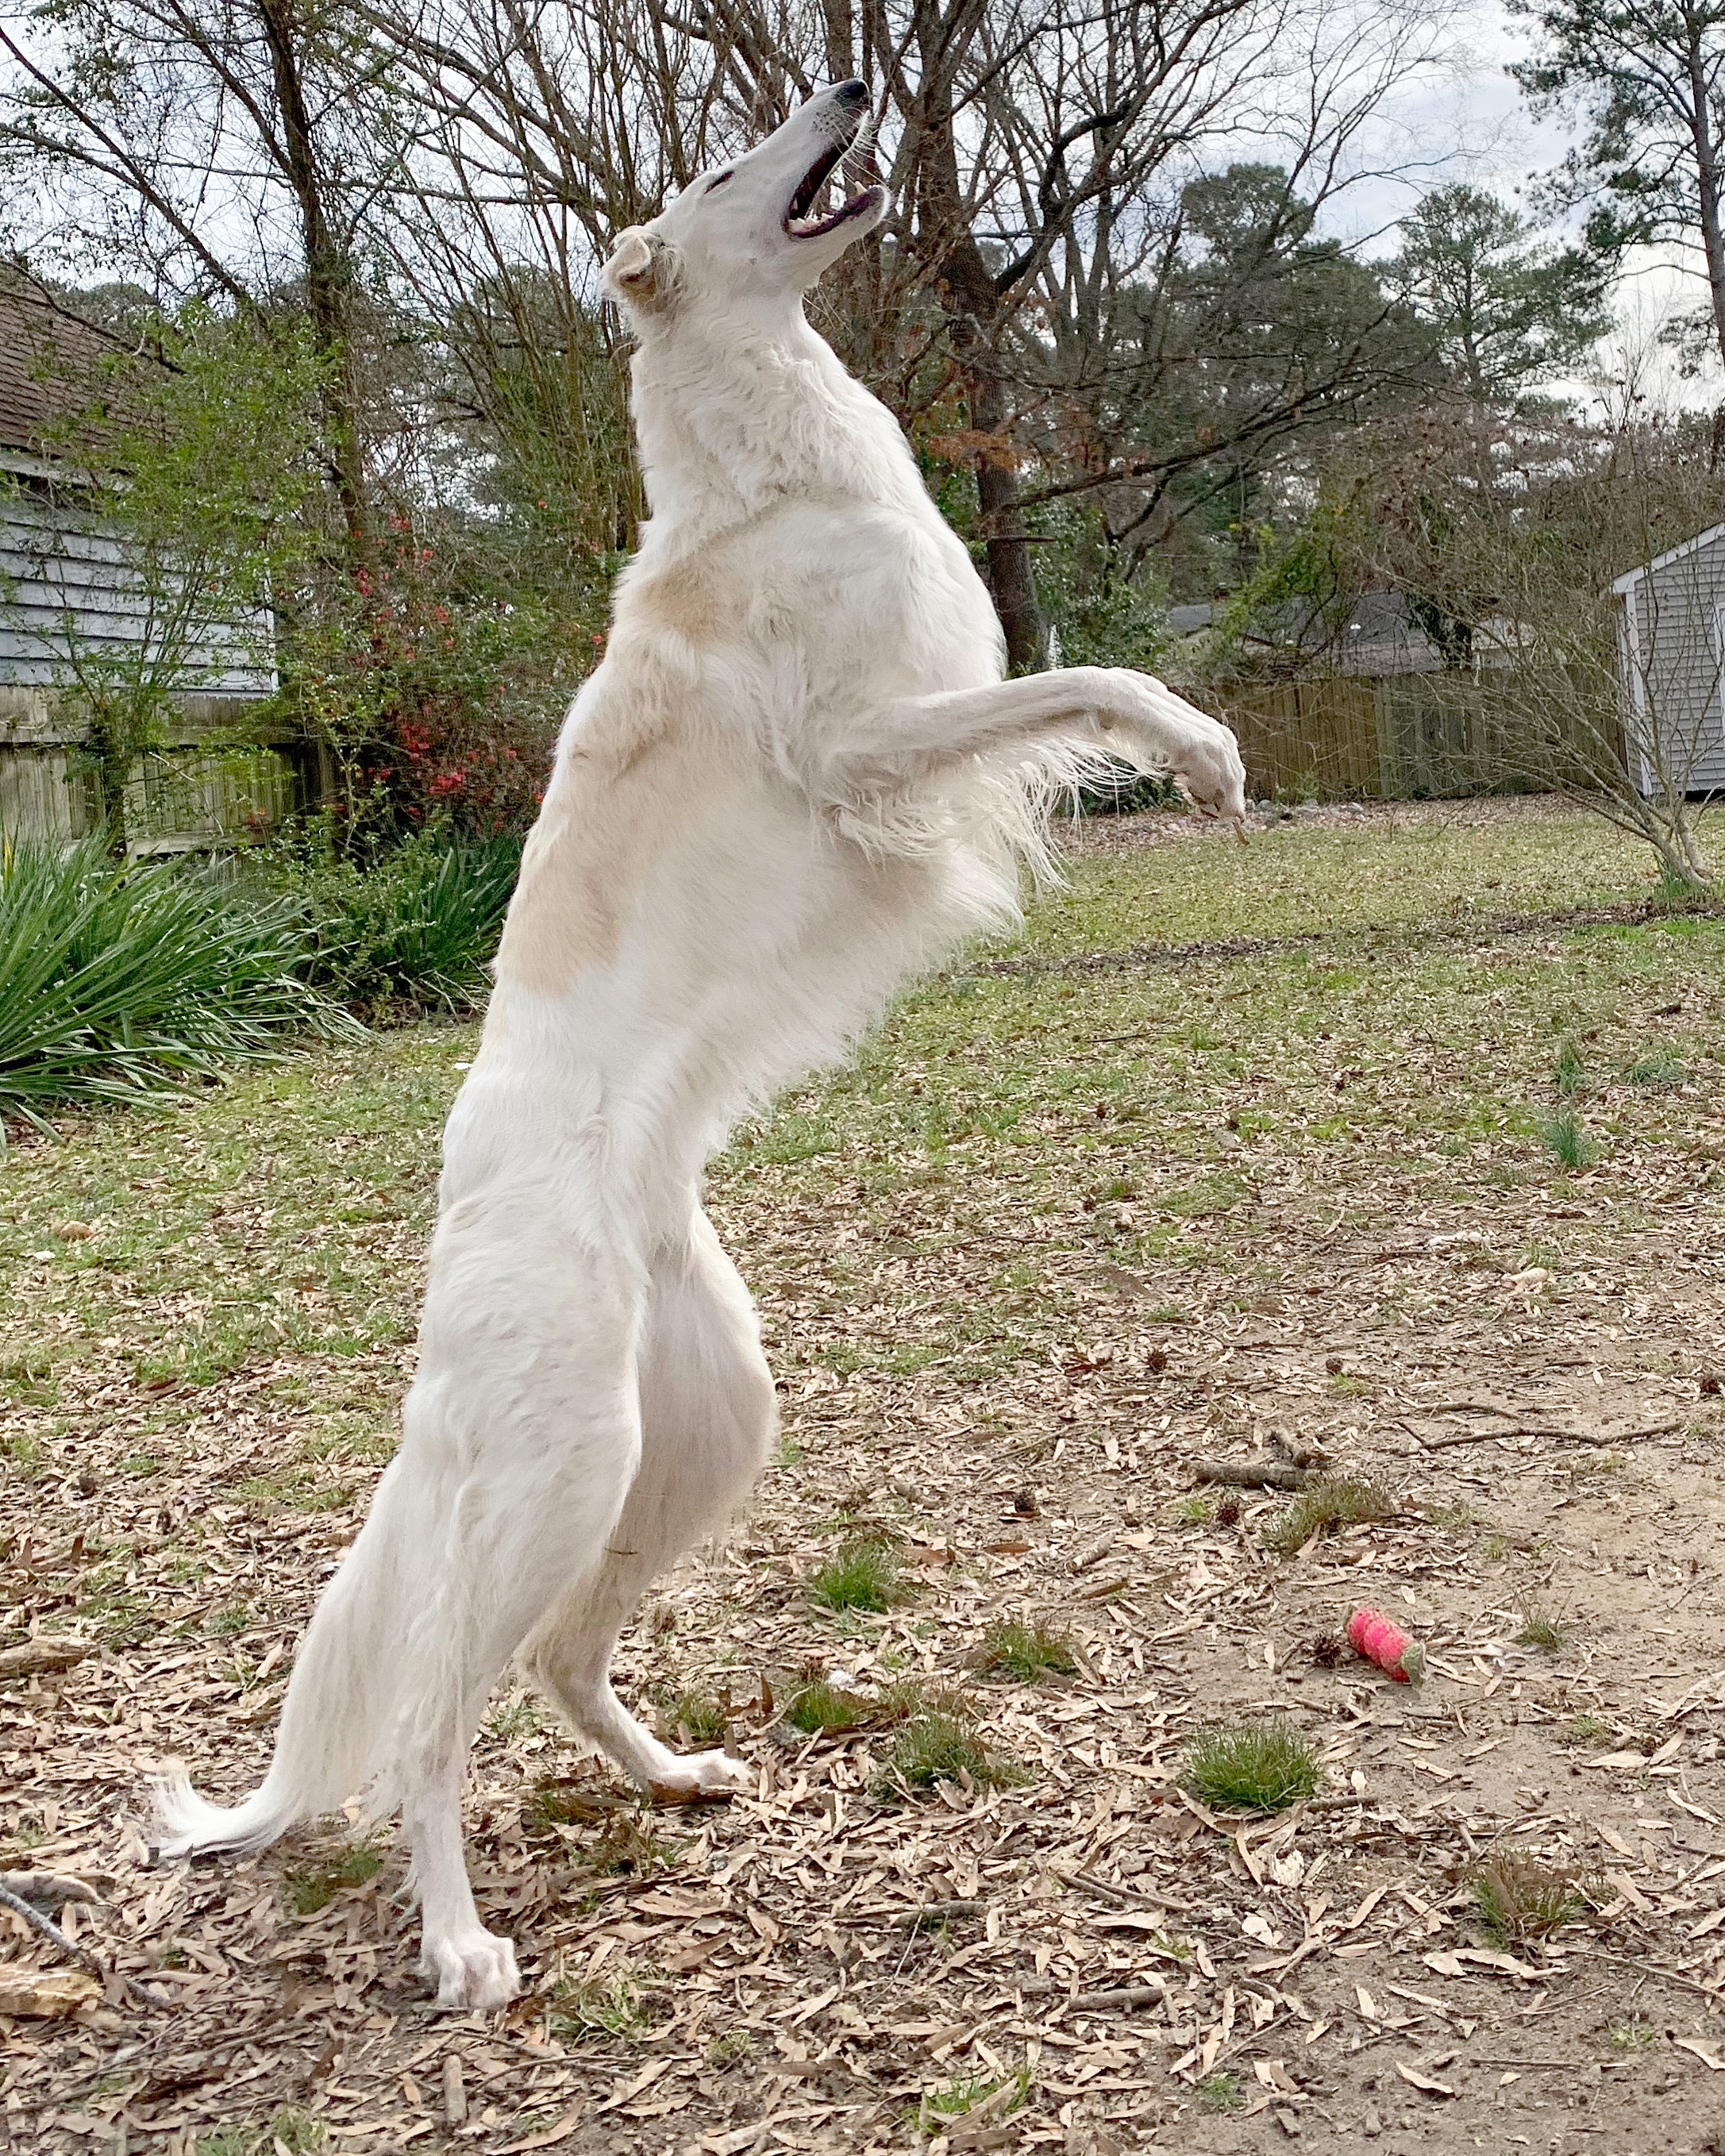 Dog with long nose stands on its hind legs